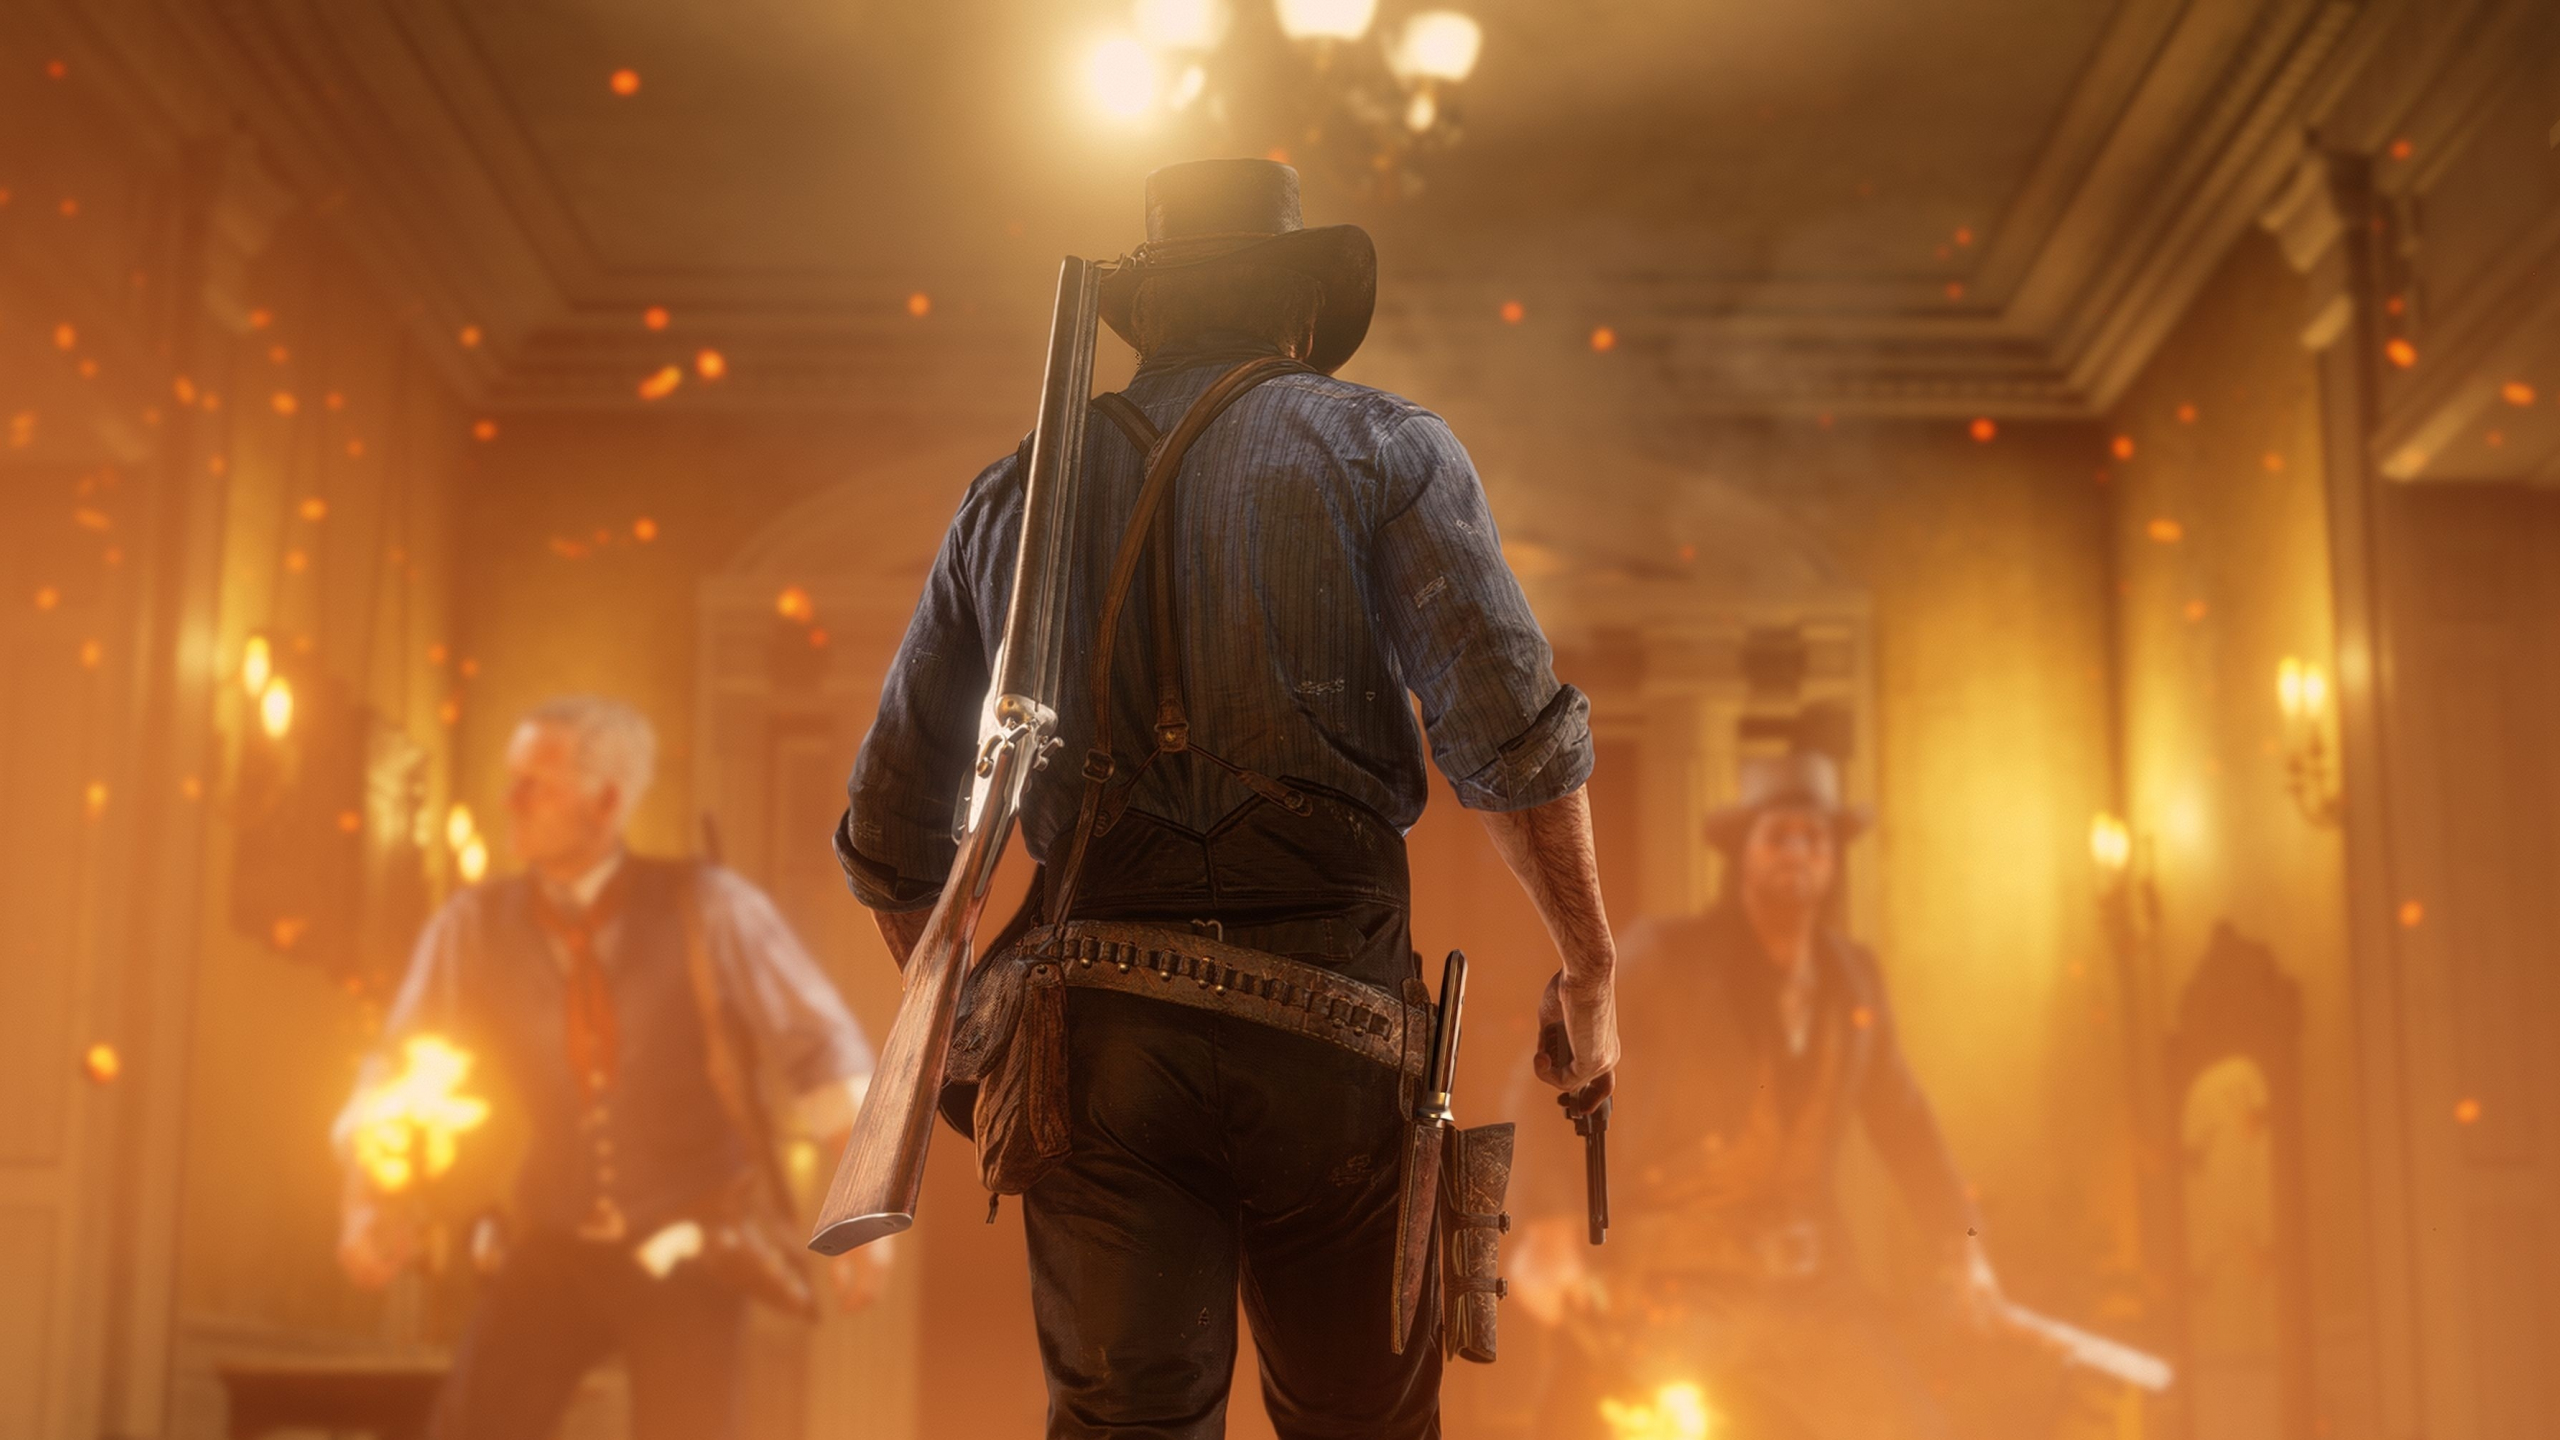 Download 2560x1440 Wallpaper Red Dead Redemption 2 Video Game